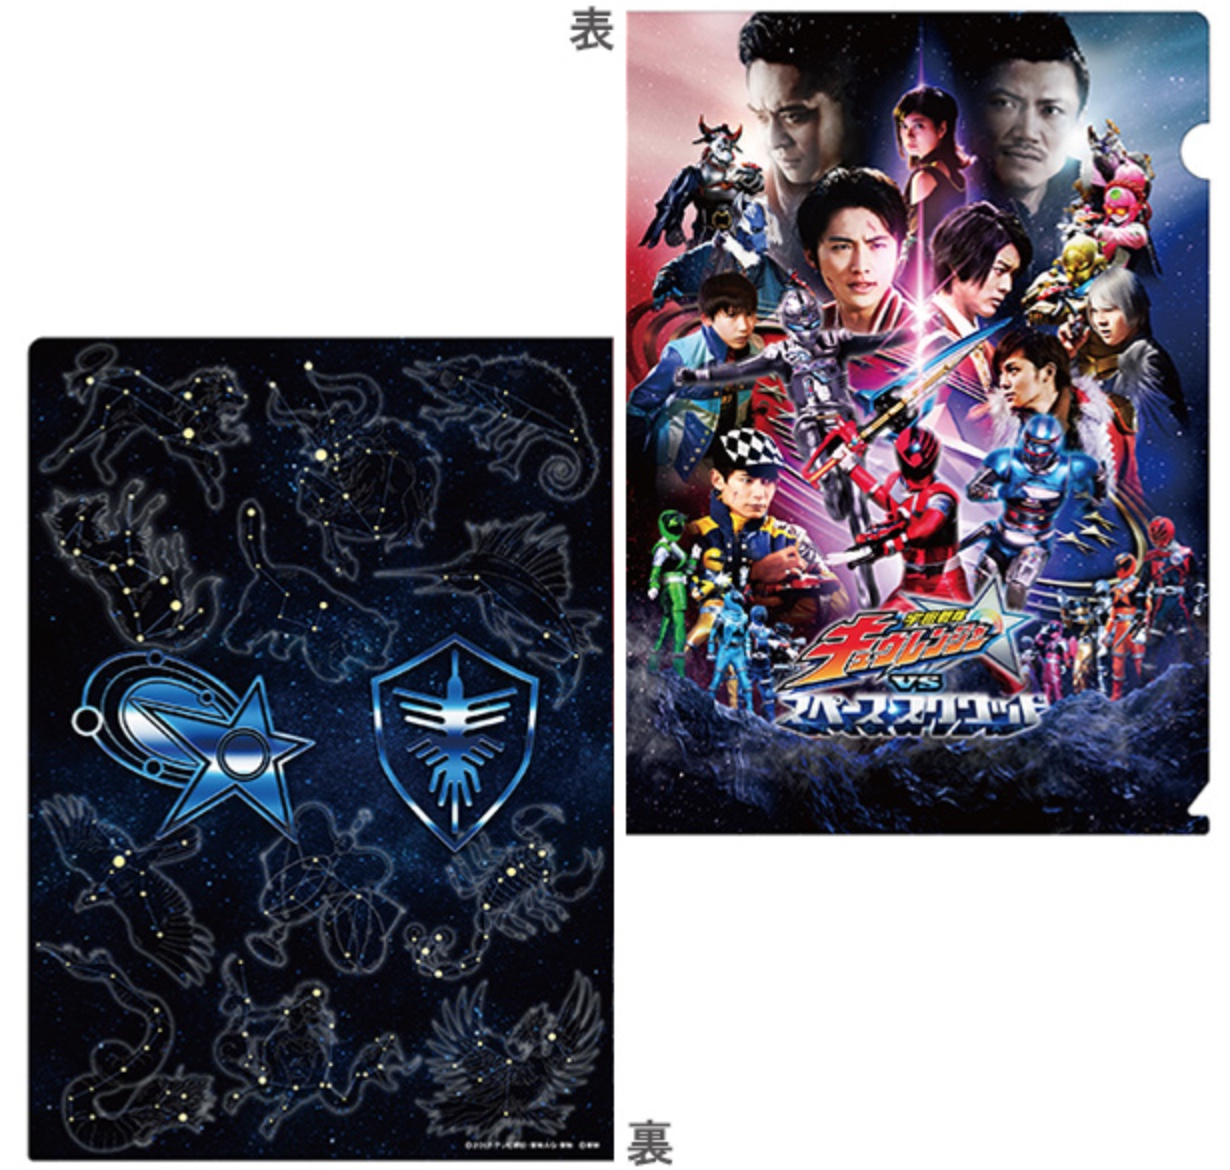 Toei Online Shop Offers New Kyuranger Merchandise